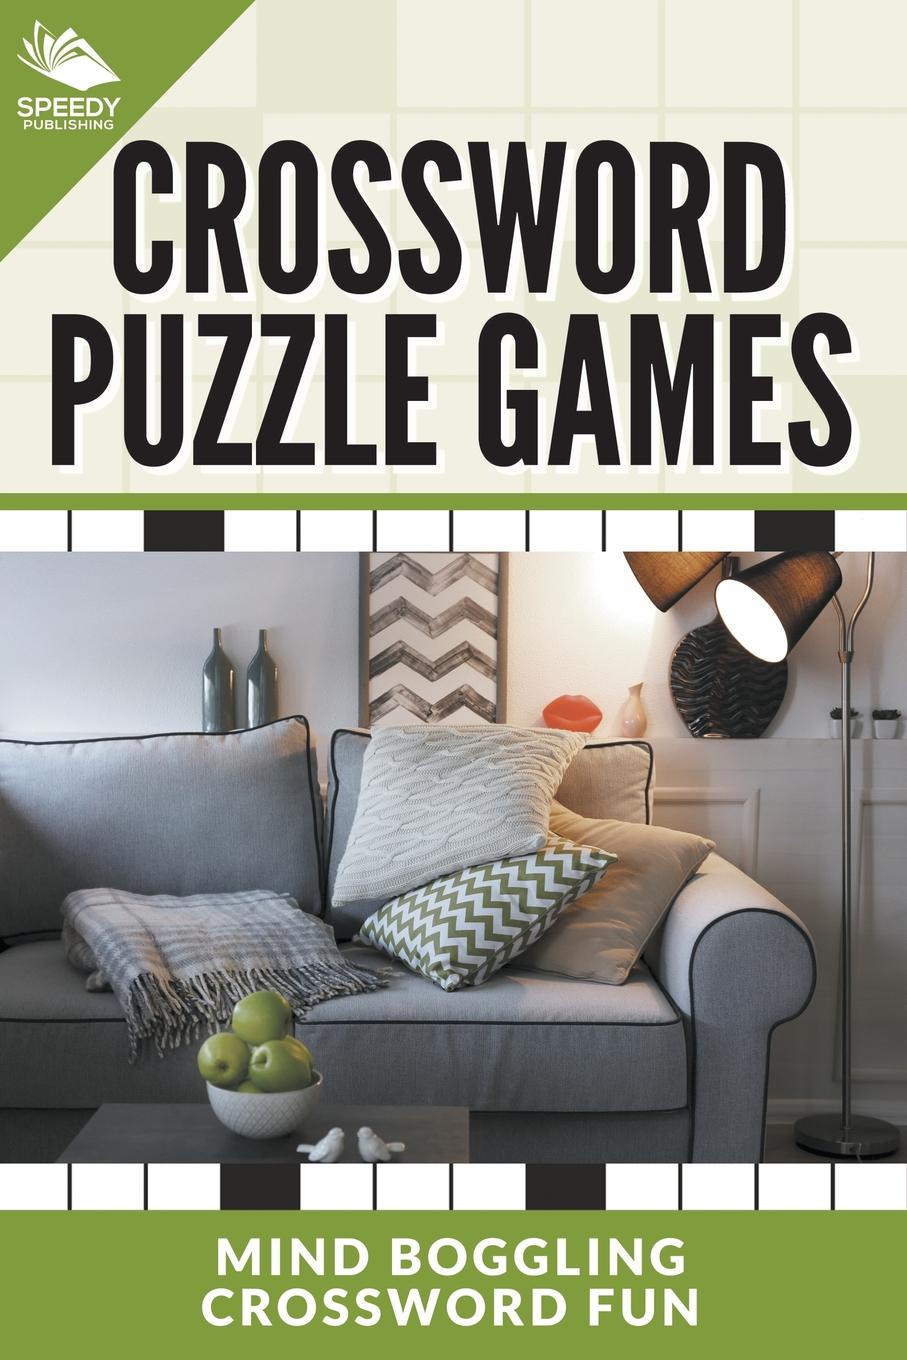 Speedy Publishing LLC. Crossword Puzzle Games. Mind Boggling Crossword Fun